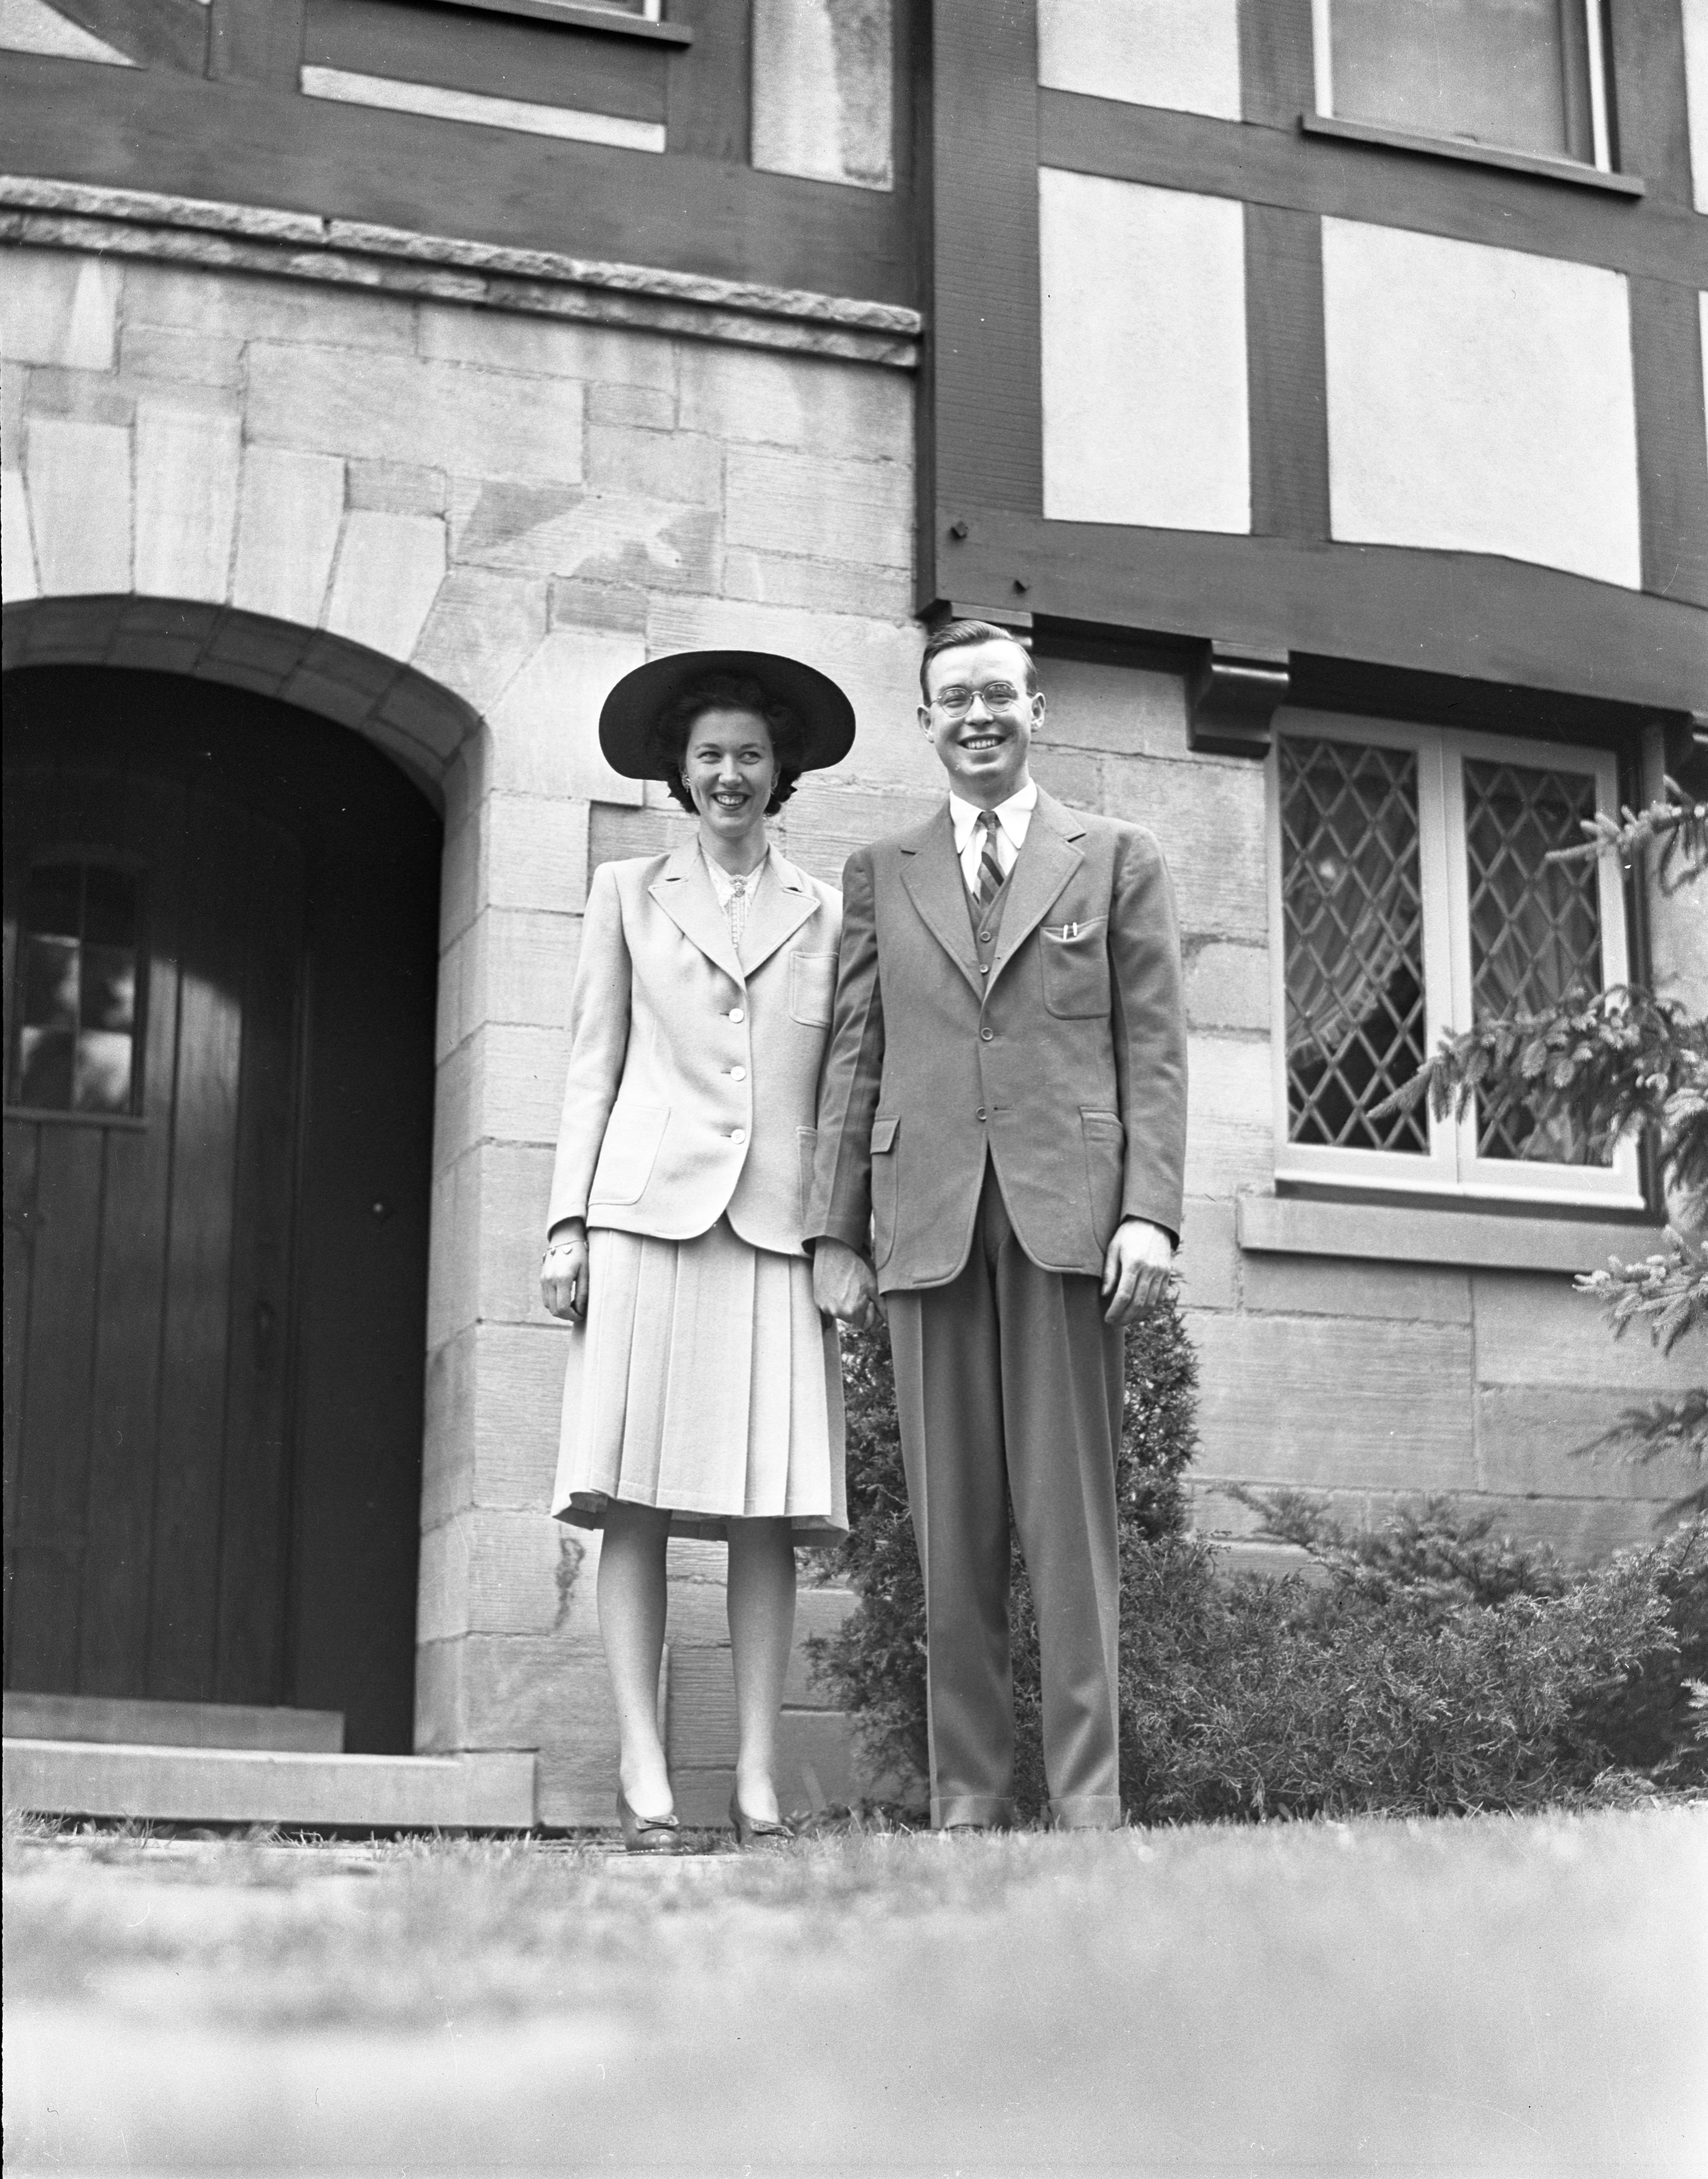 Dorothy Dale & John MacKenzie On Their Wedding Day - May 27, 1942 image